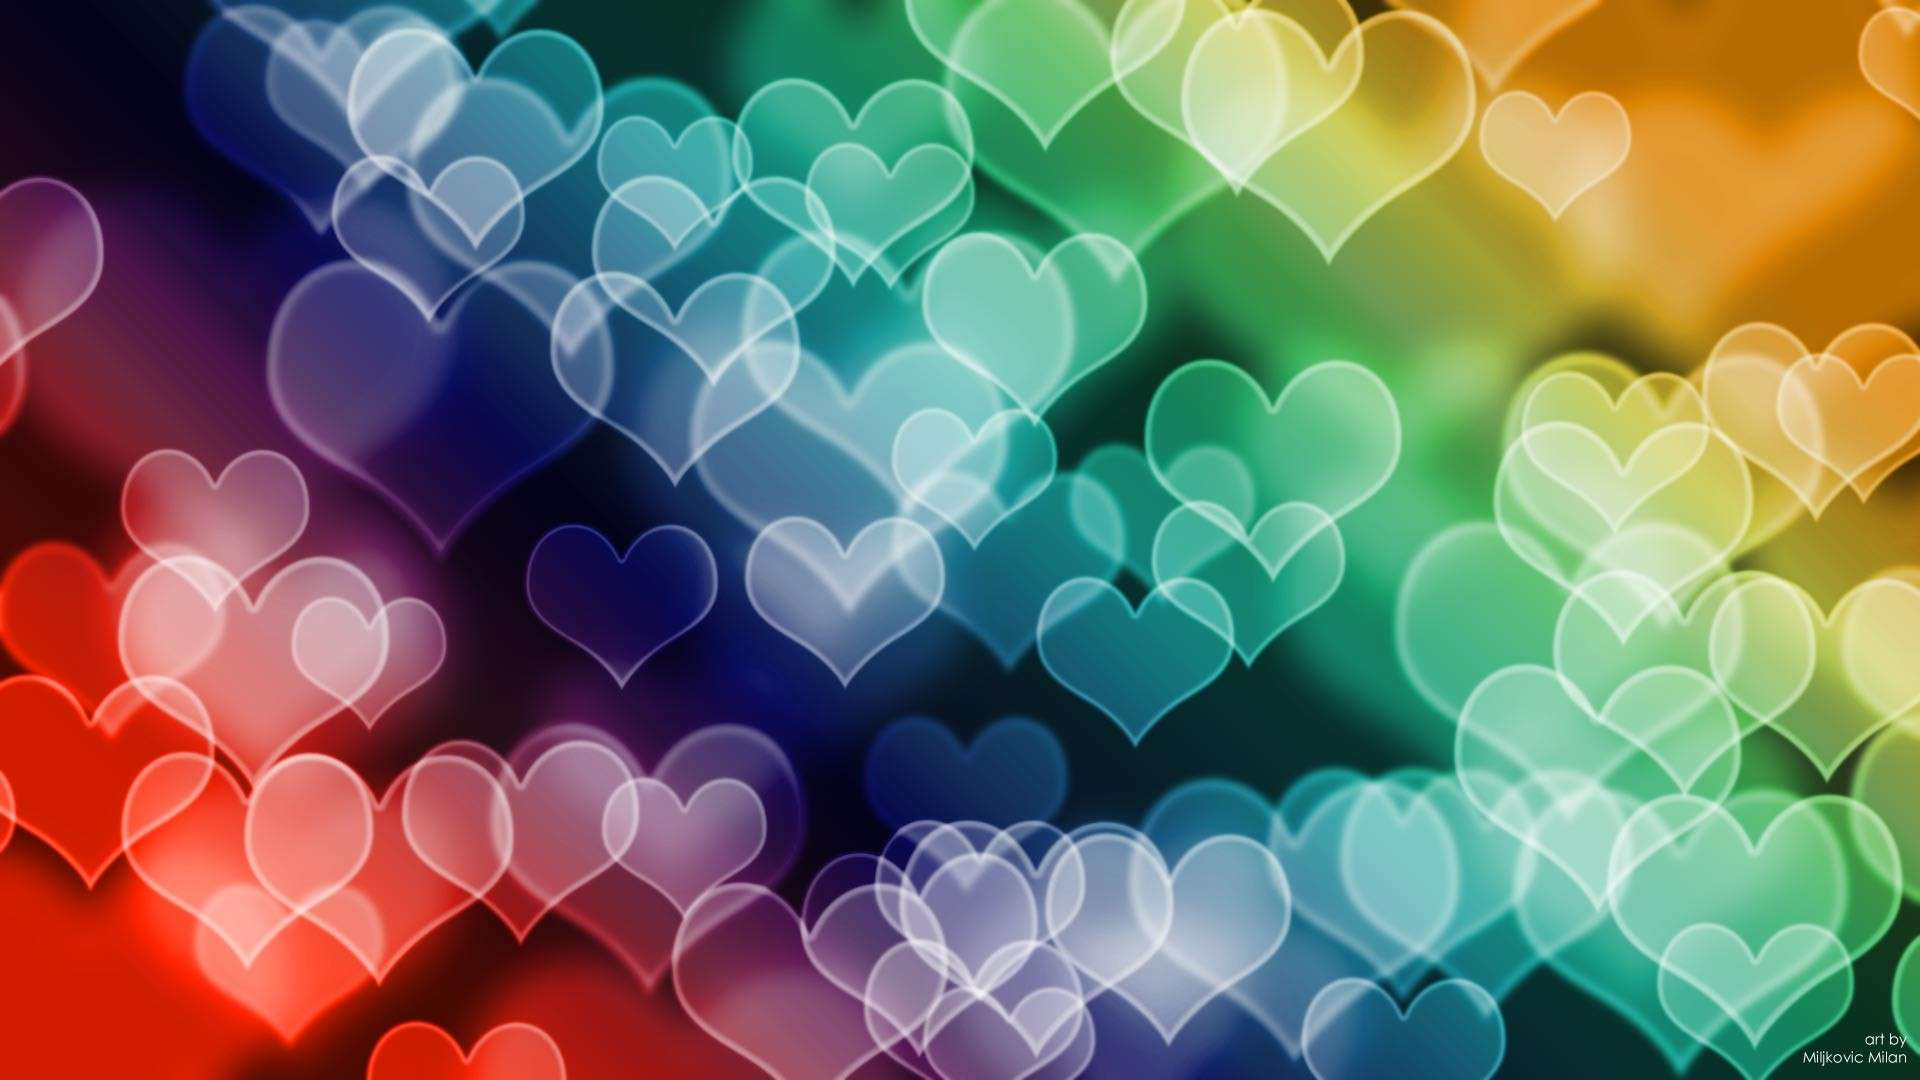 Hearts wallpapers wallpaper cave glowing hearts wallpapers hd wallpapers early voltagebd Images